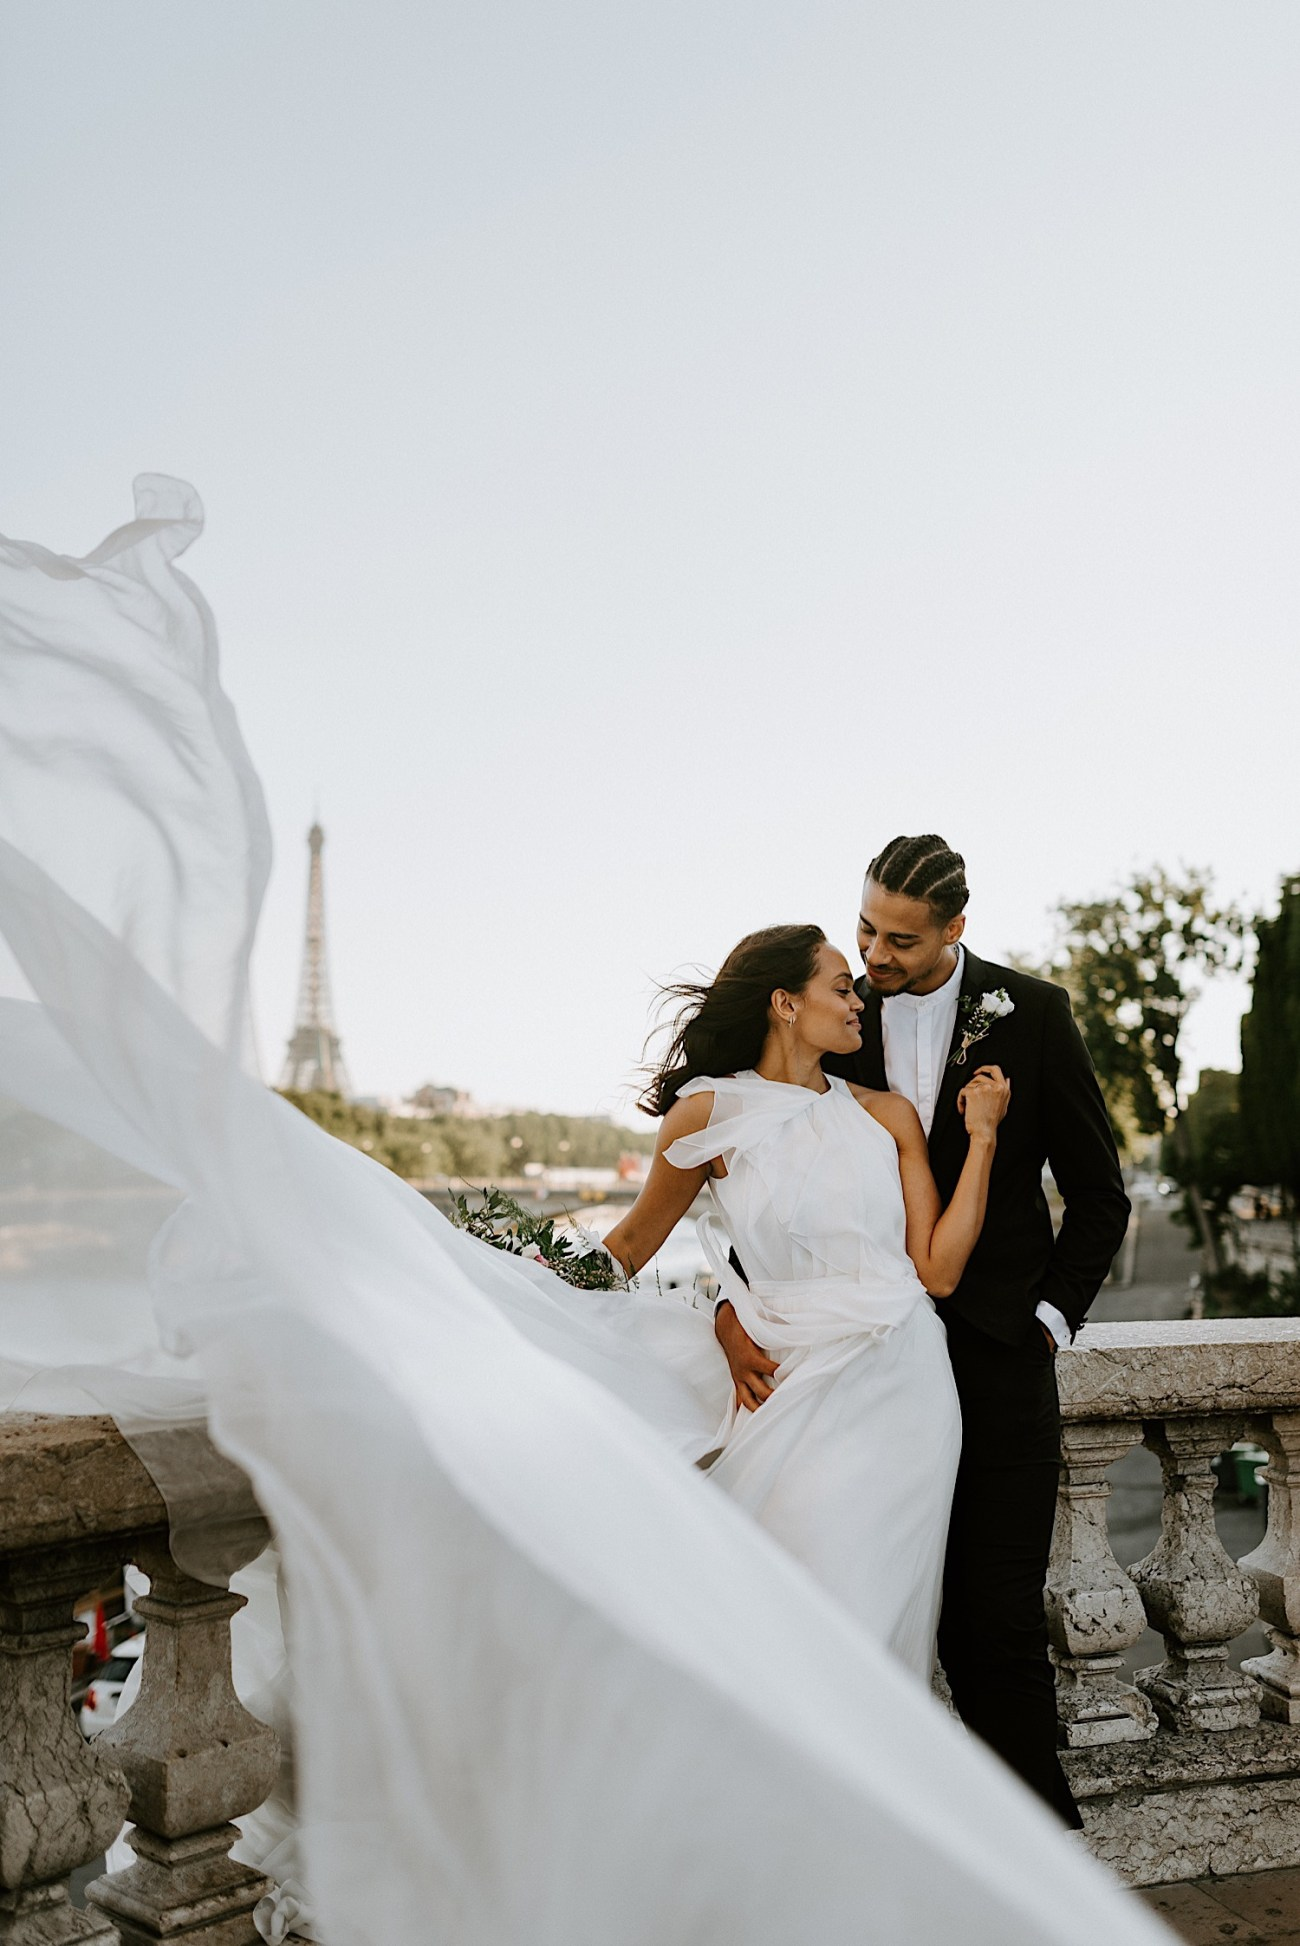 Paris Wedding Photos Paris Wedding Photographer Paris Photographe De Marriage Pont Alexandre Wedding Photos Anais Possamai Photography 16